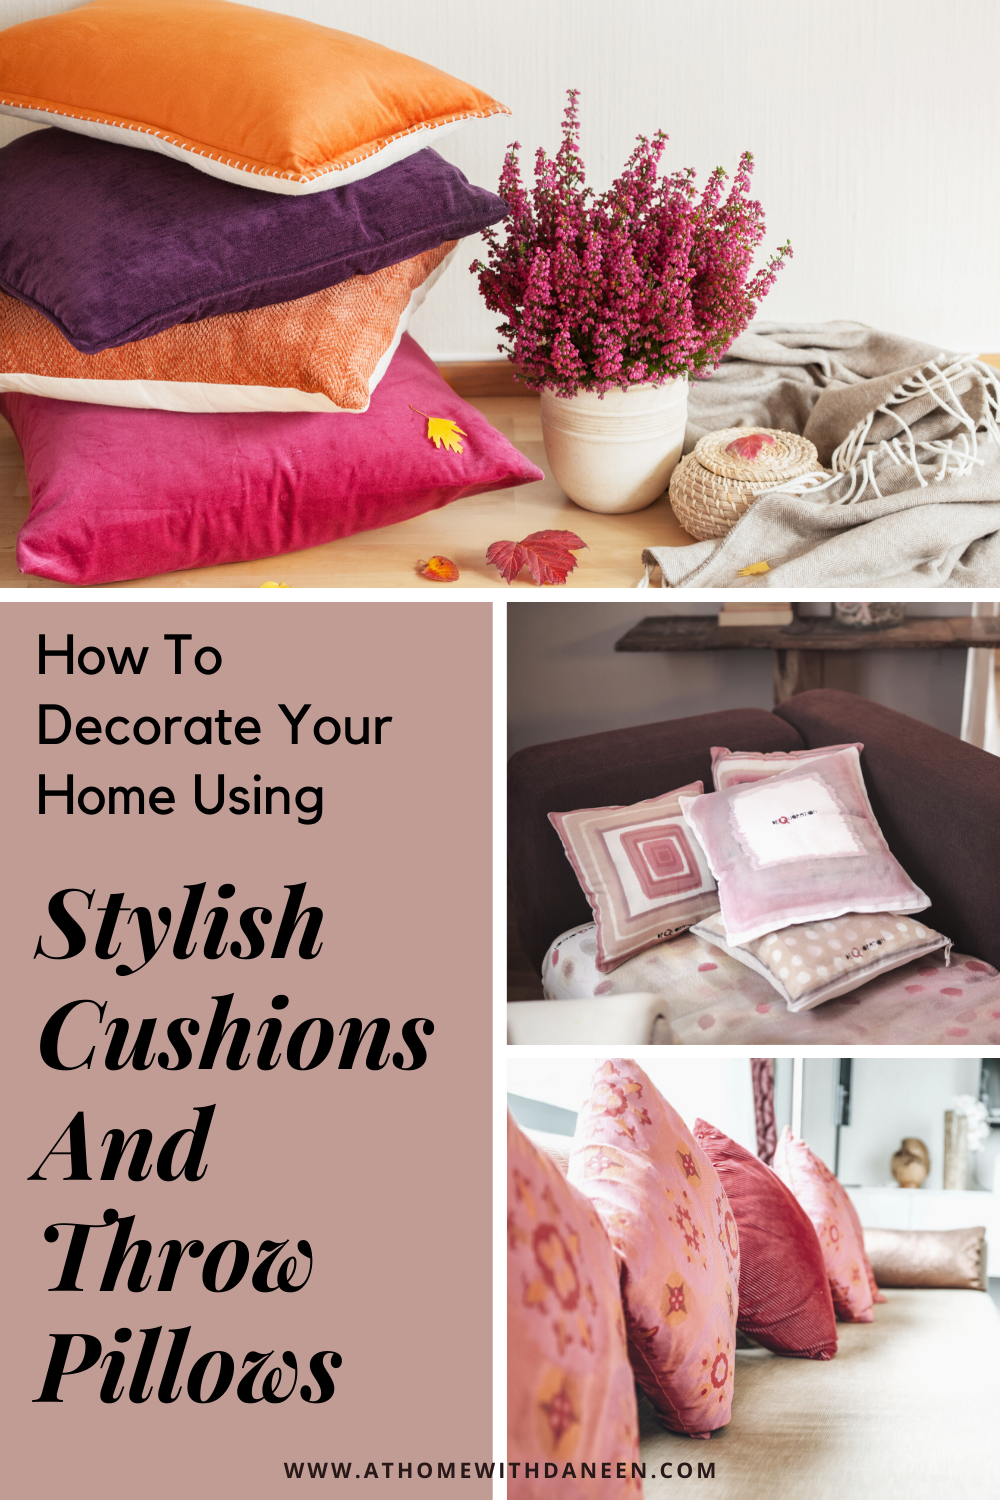 You can raise your home decor game just by adding a few inexpensive decor pieces.  Here's what adding stylish cushions and throw pillows can do for your space. 🏠🏡🏘 #interiordesign #interiordecor #throwpillows #homedecor #interiordecor #pillows #bedroomdecor #inexpensivedecor #decordiy #easydecorideas #livingroomdecorideas #bedroomdecorideas #easydecorating